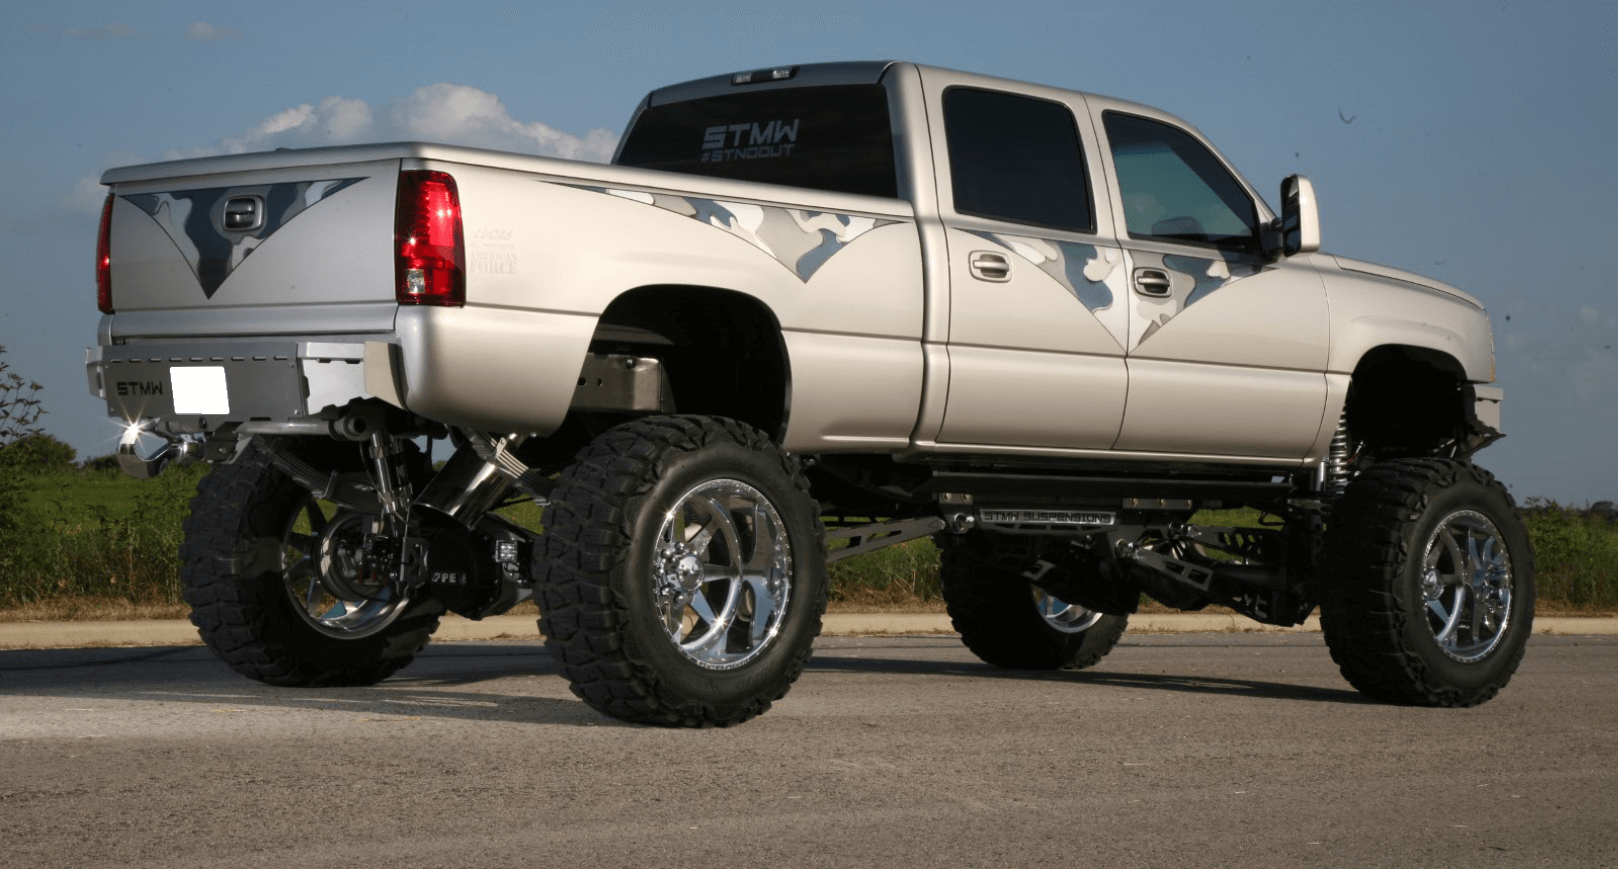 Subtle graphics allow the detail work on the ShowTime Metal Works bumpers and suspension to be the focal point of the truck.